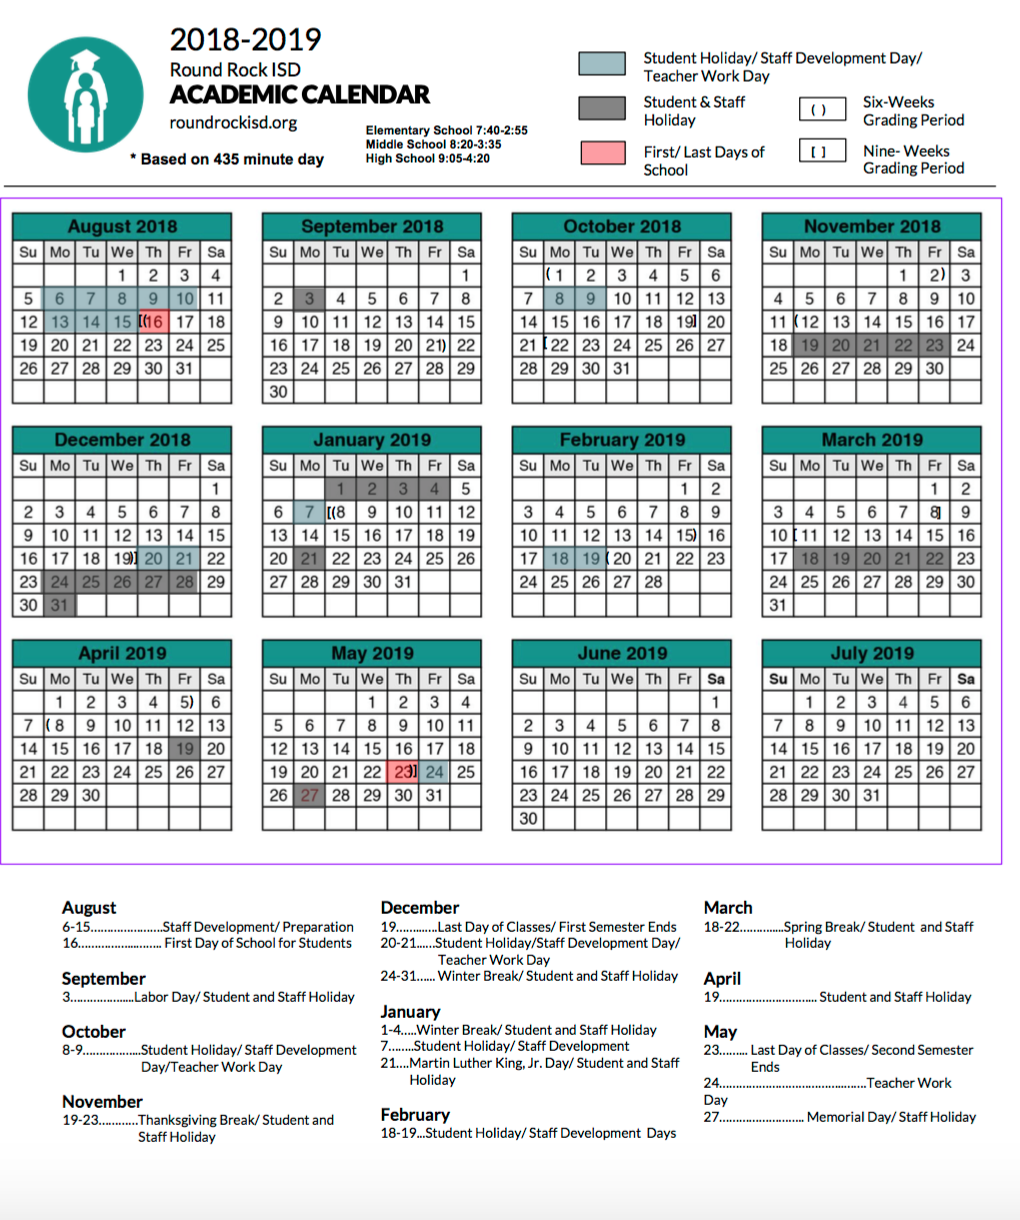 Quotes Teacher Calendar 2019 2020: What You Need To Know About The RRISD Academic Calendars